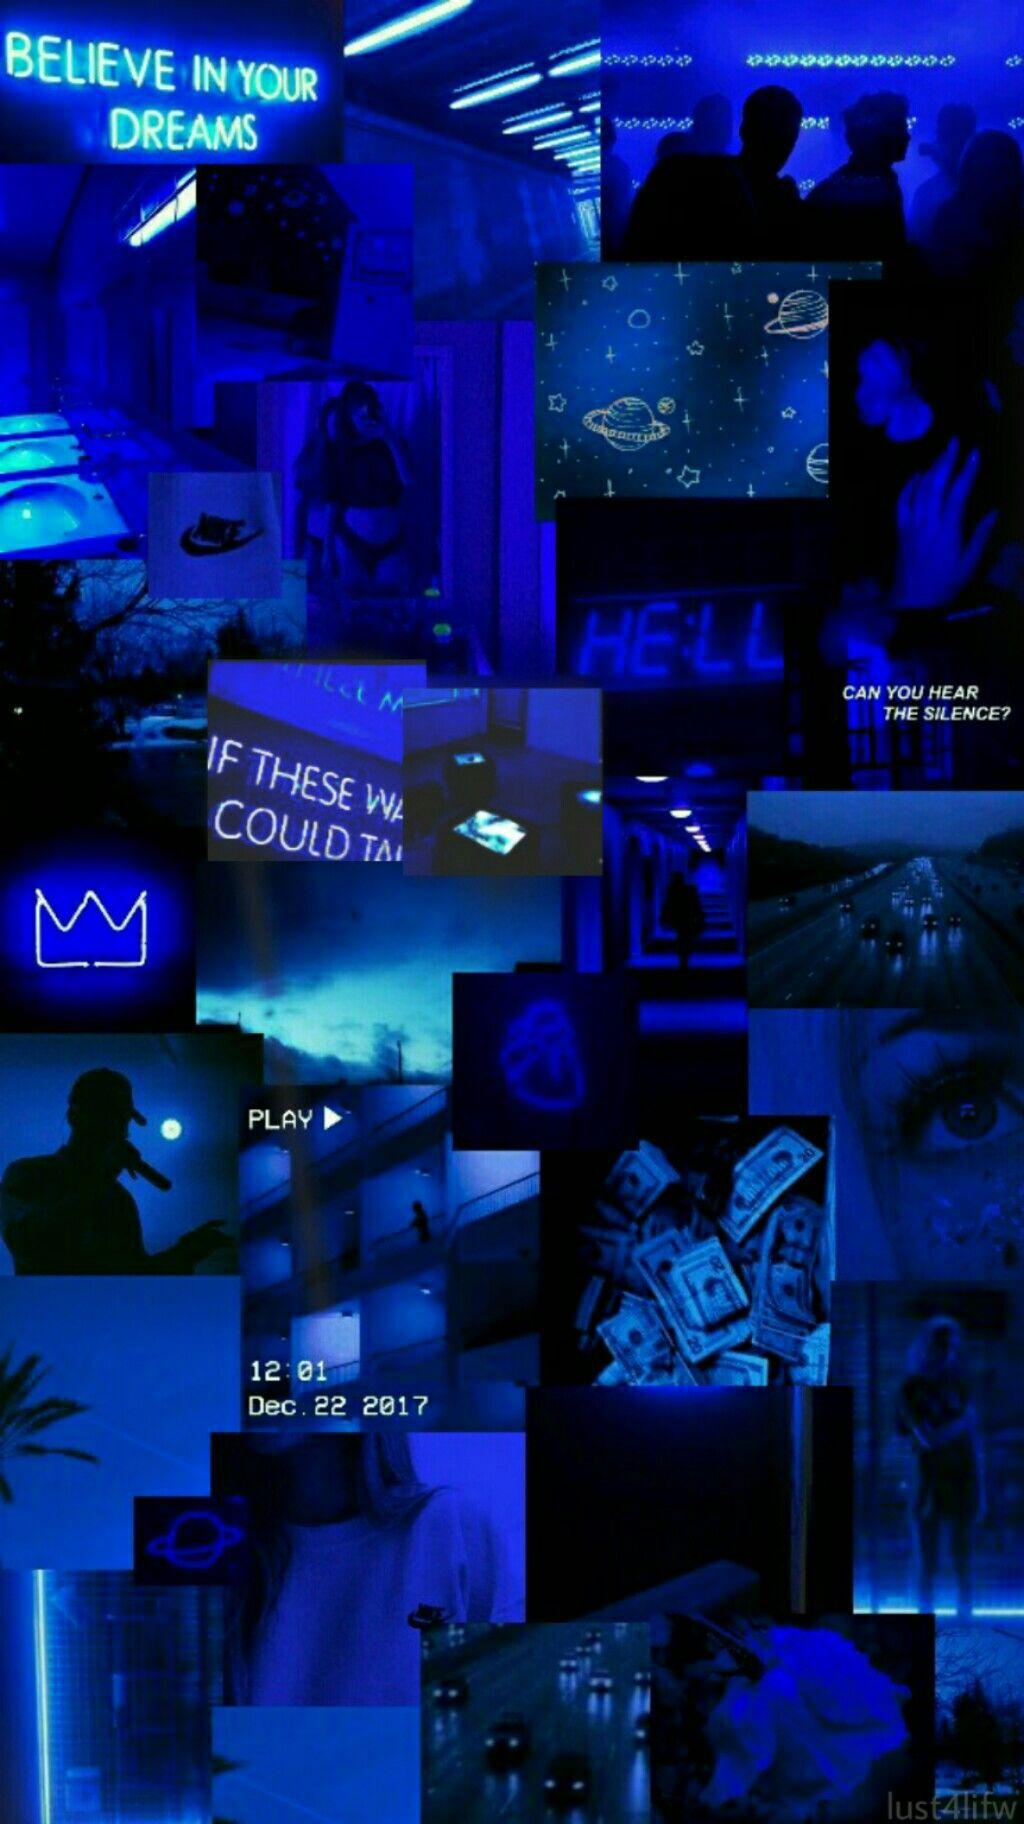 Midnight Blue Blue Aesthetic Wallpaper Quotes